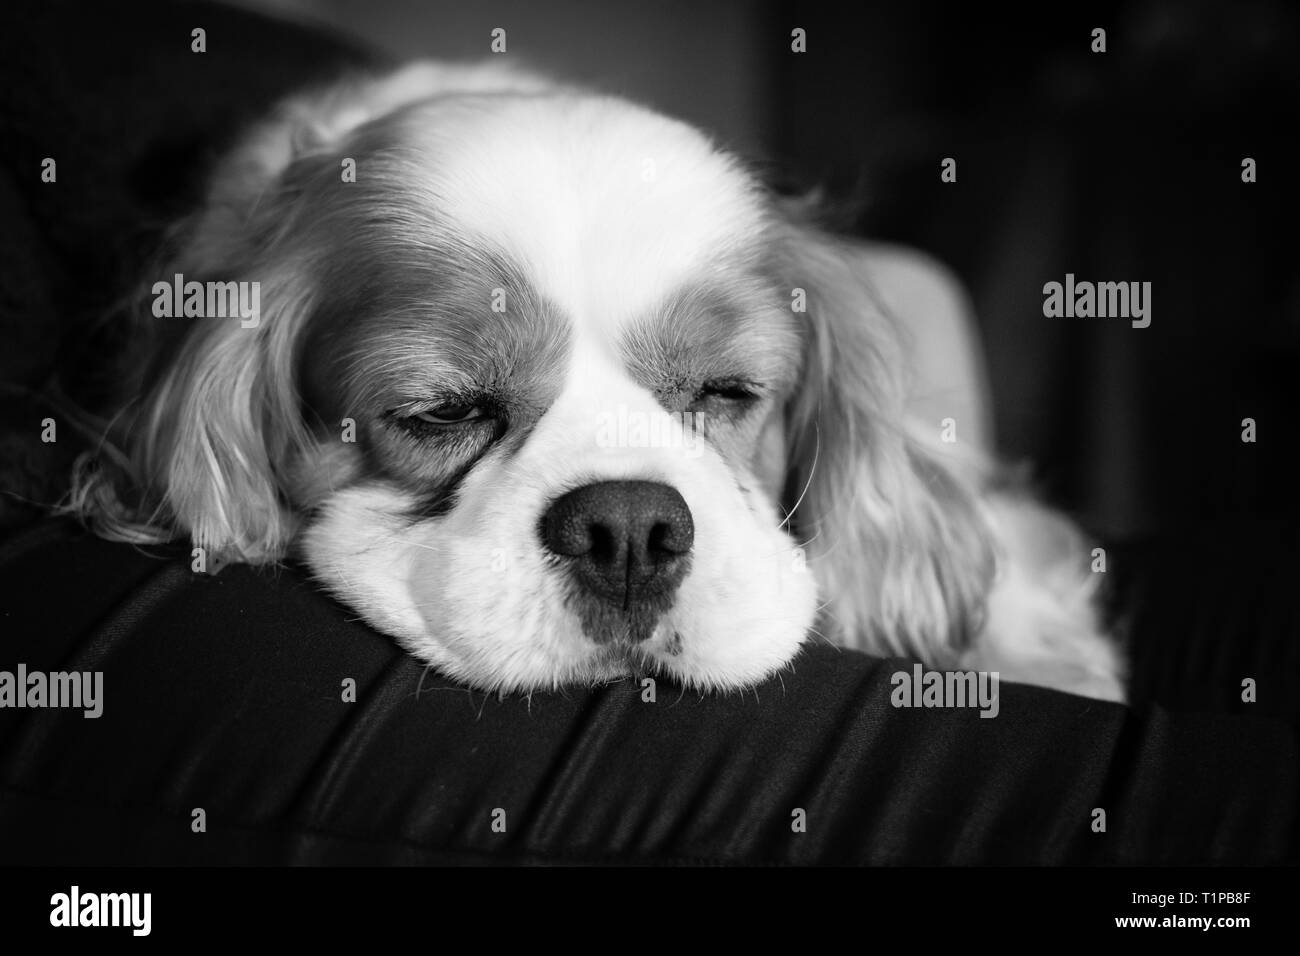 Cavalier king charles almost sleeping - Stock Image